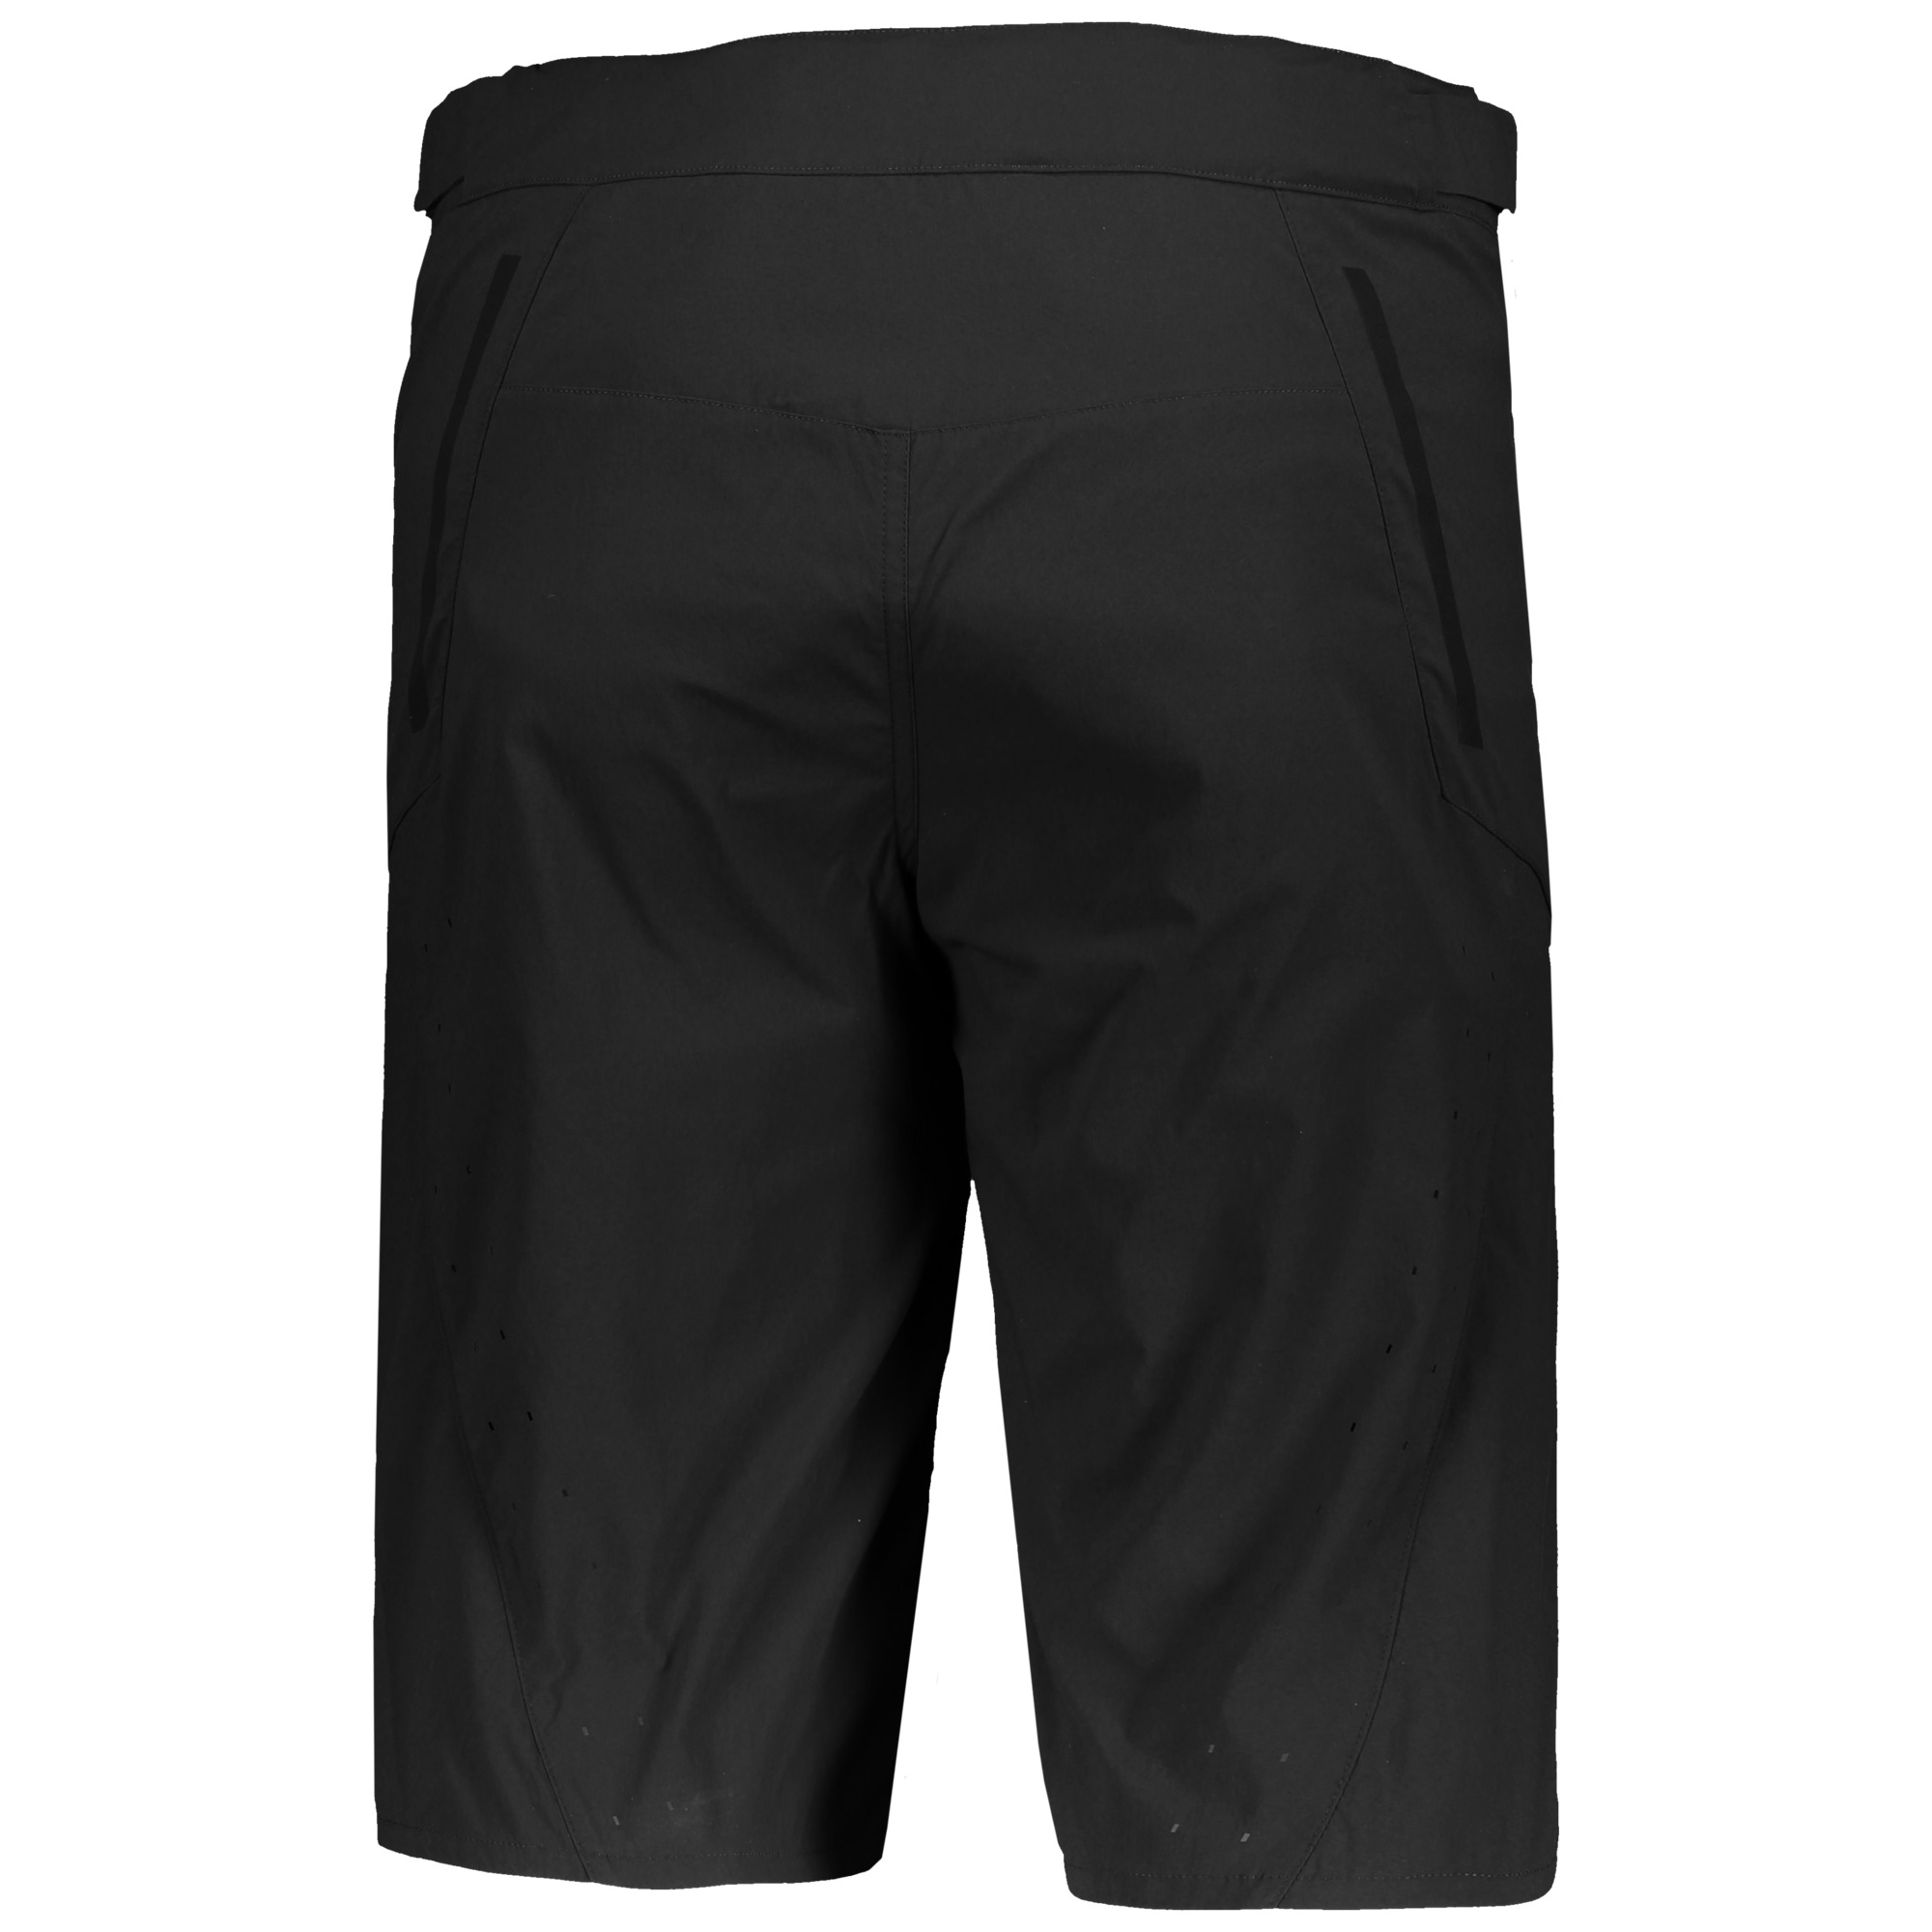 Short SCOTT Endurance Is/fit w/pad